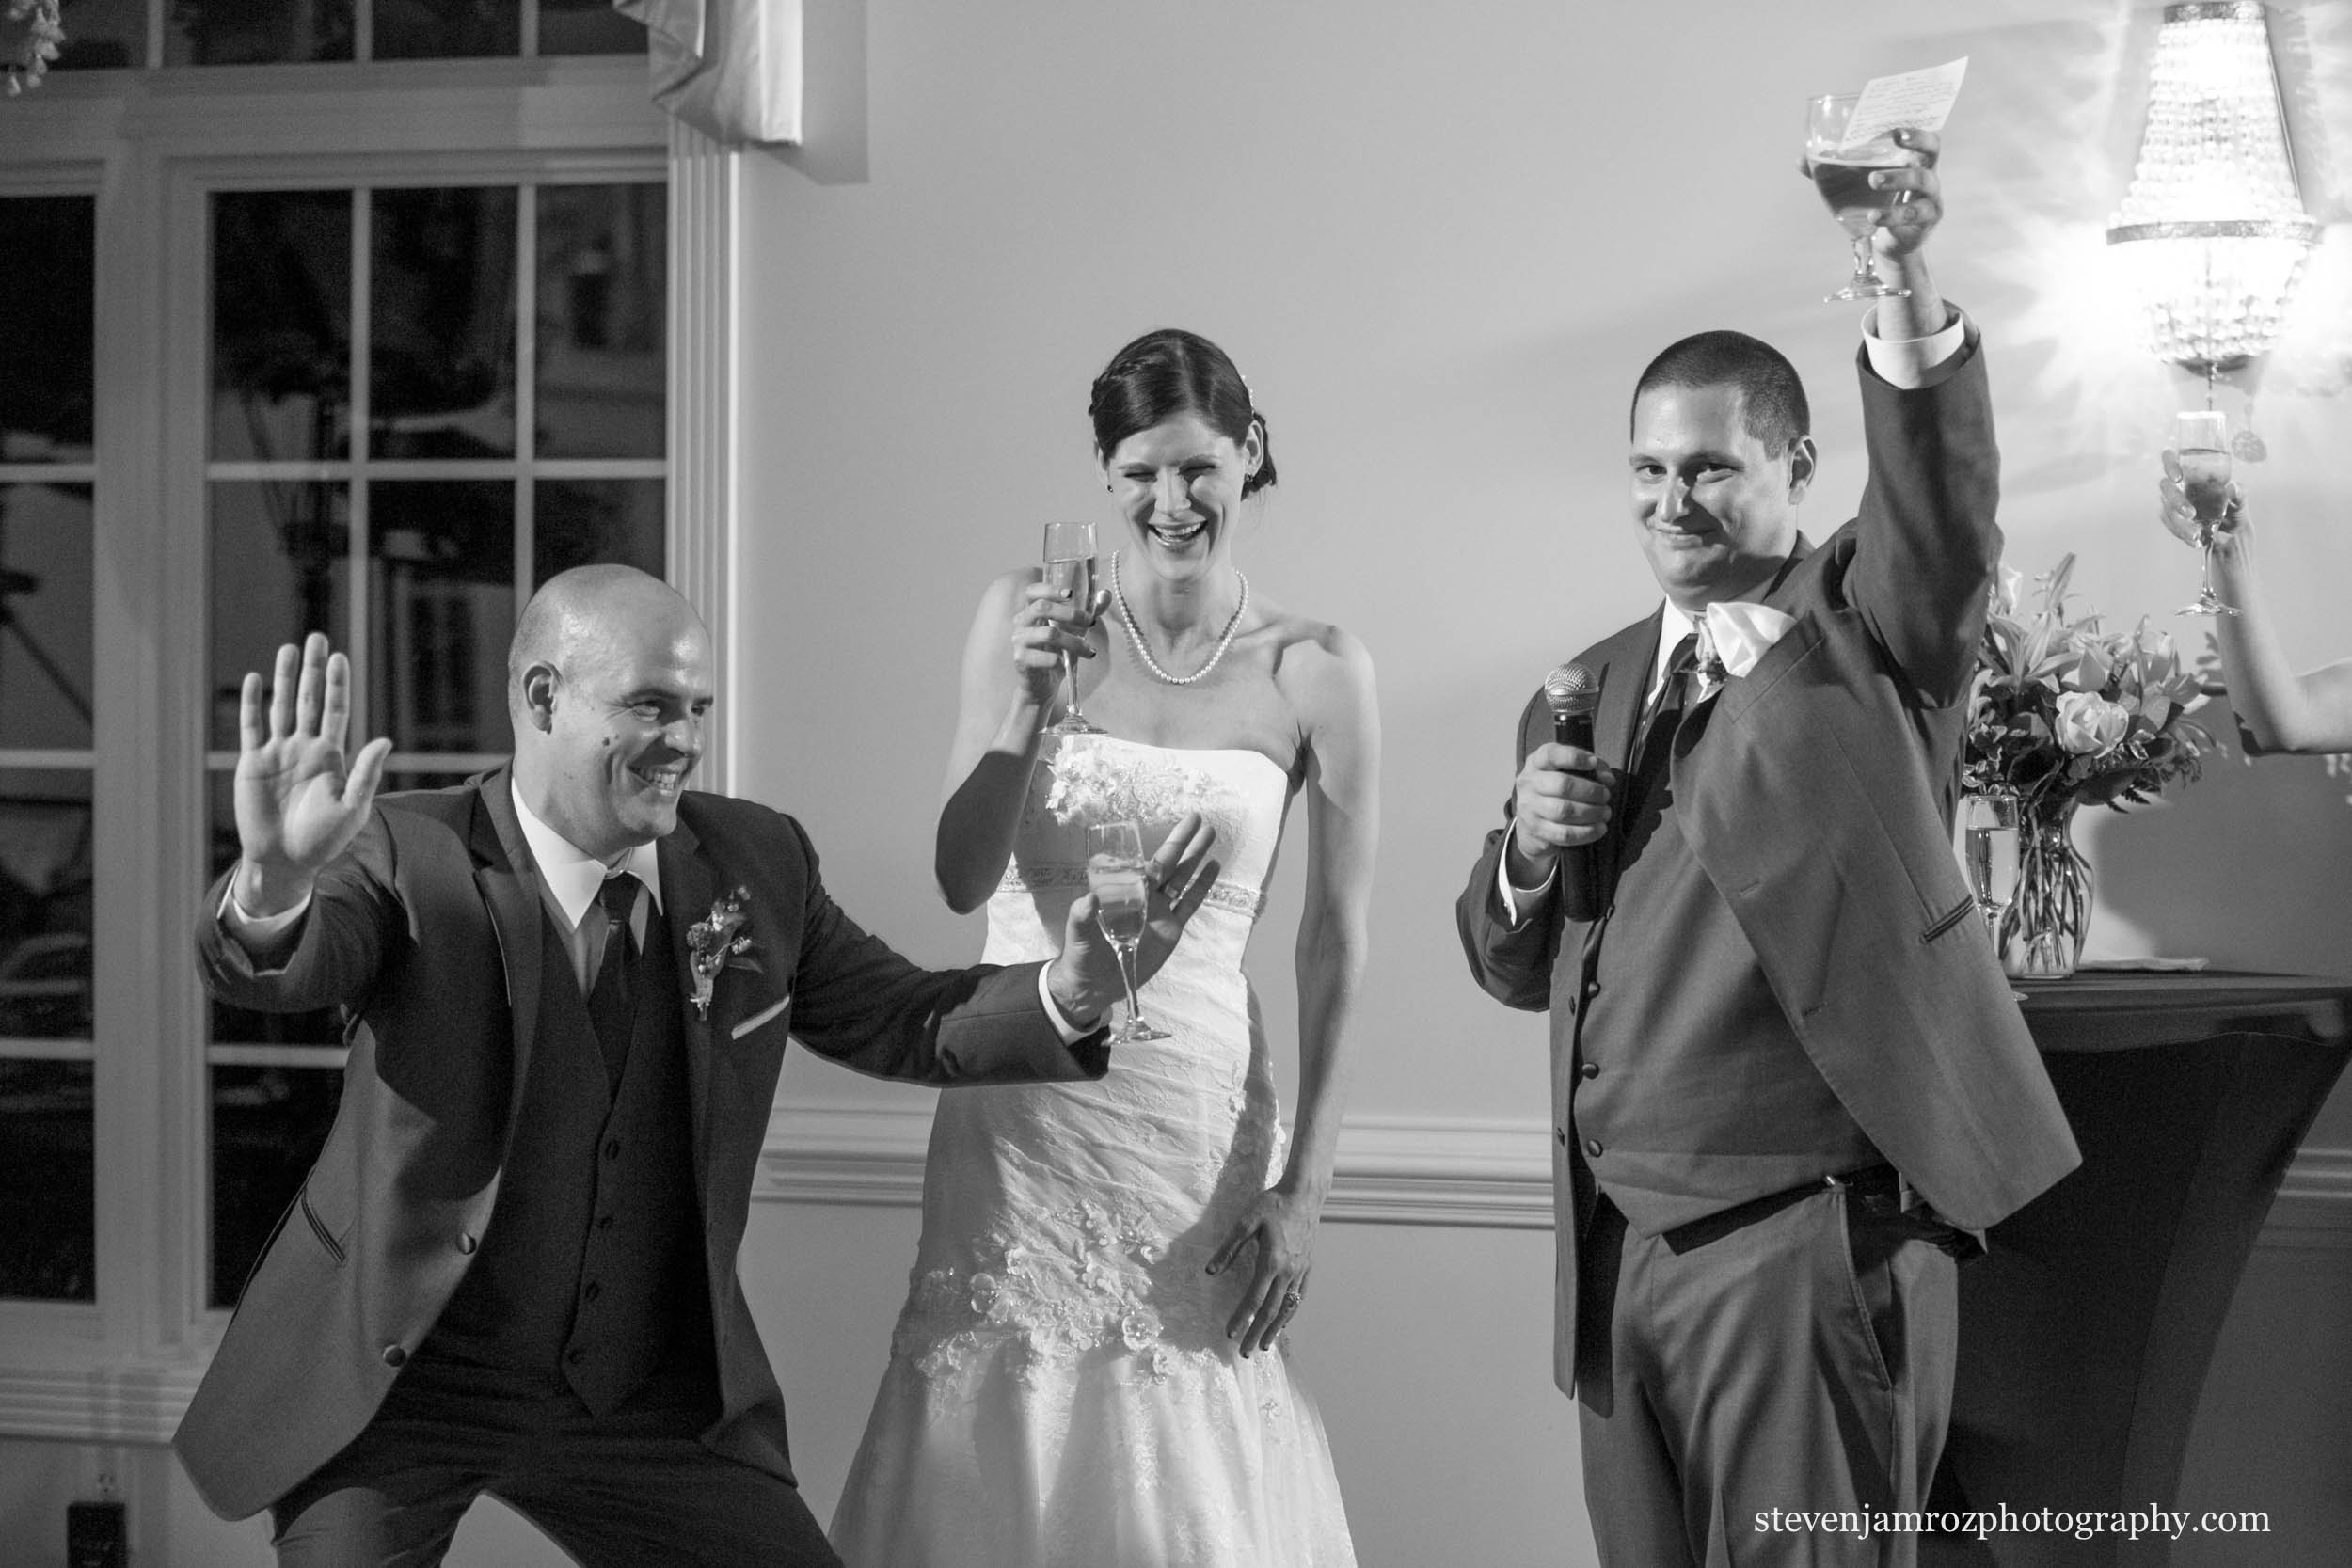 toasts-hudson-manor-raleigh-wedding-steven-jamroz-photography-0262.jpg